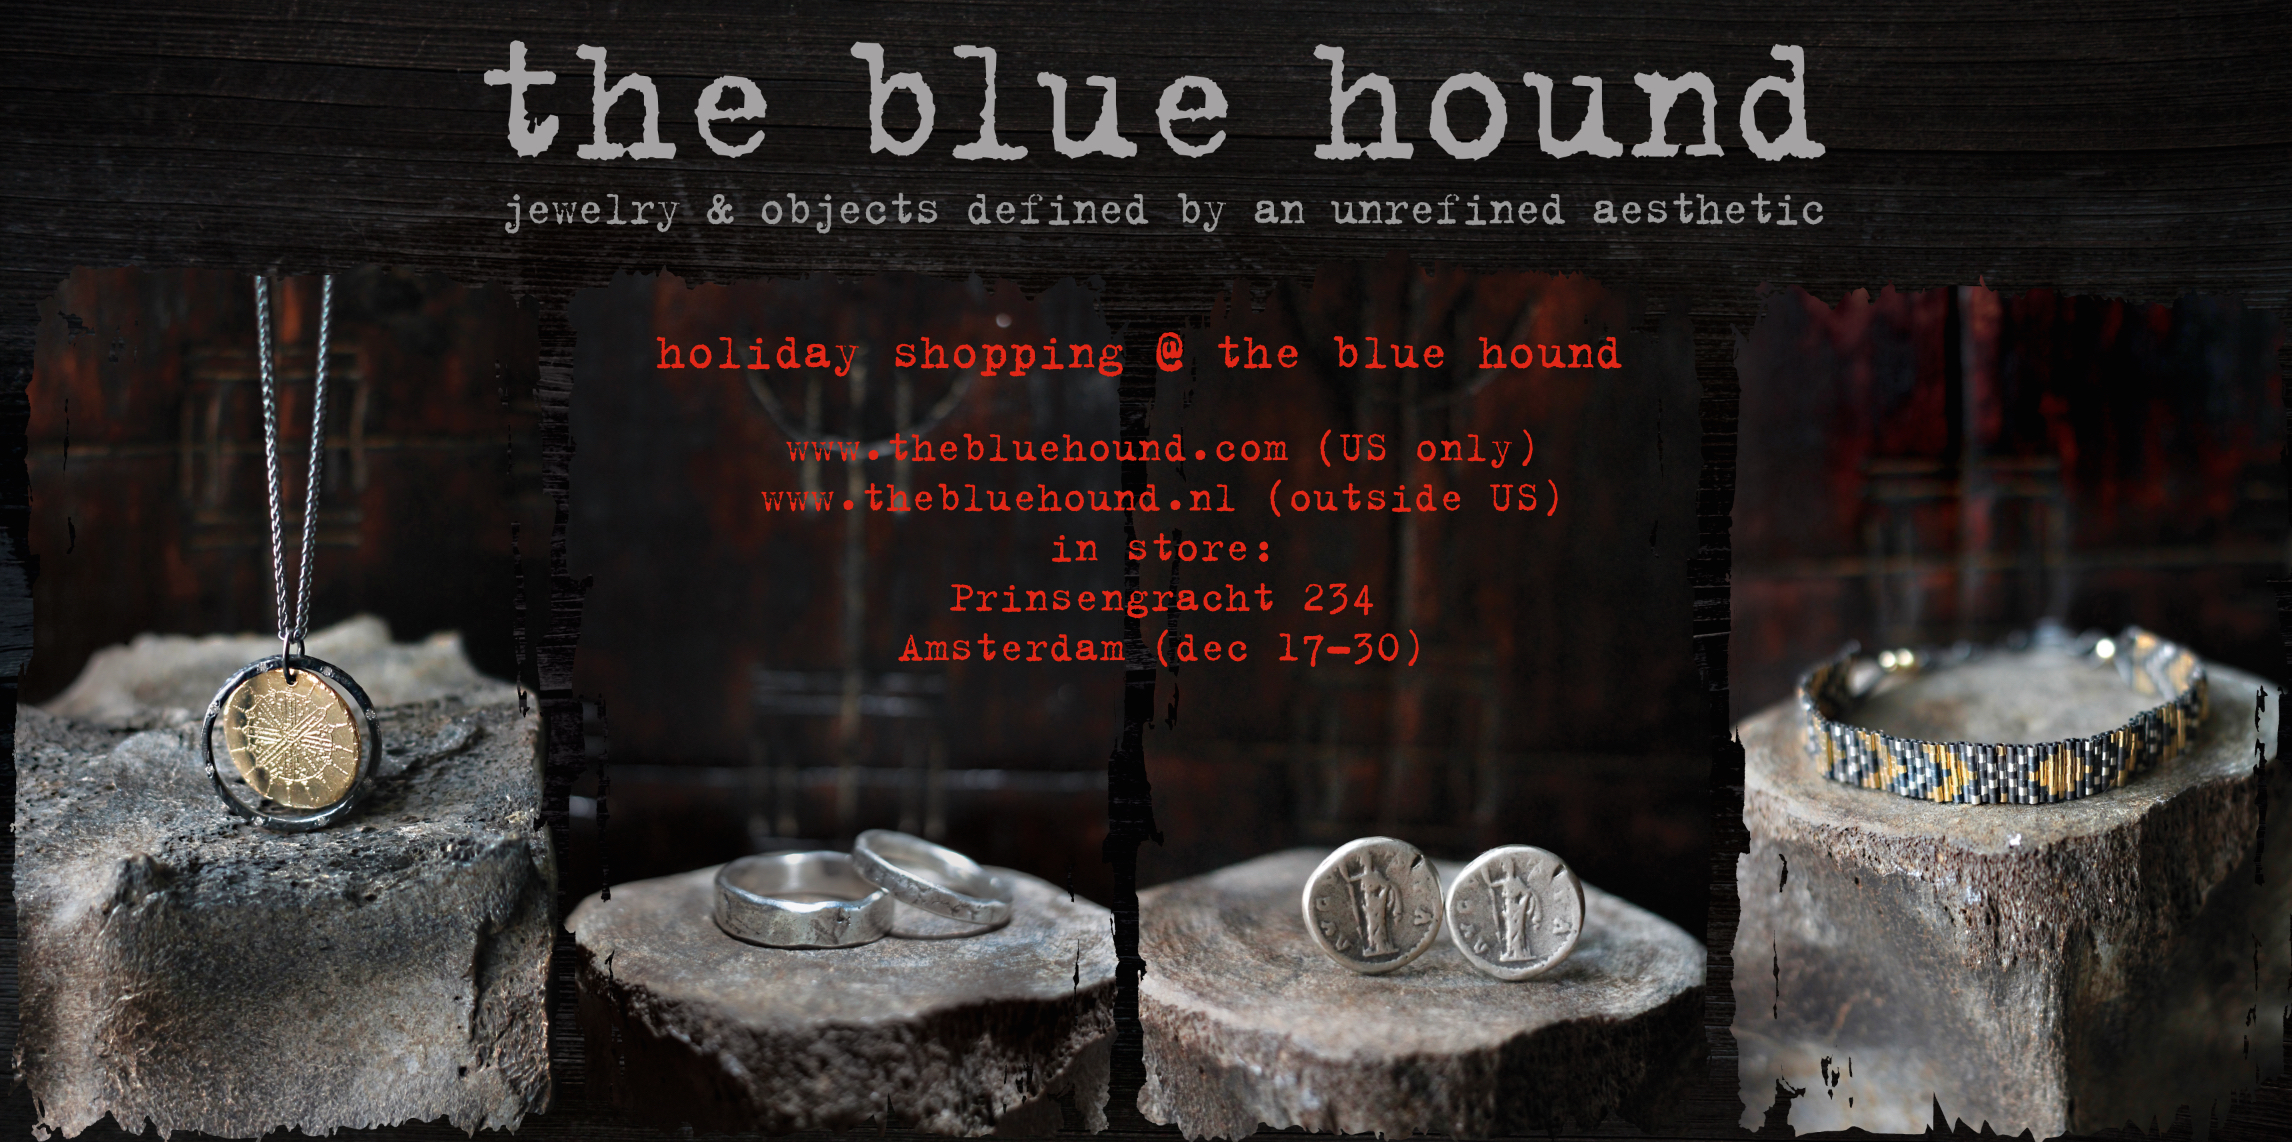 The Blue Hound Holiday shopping